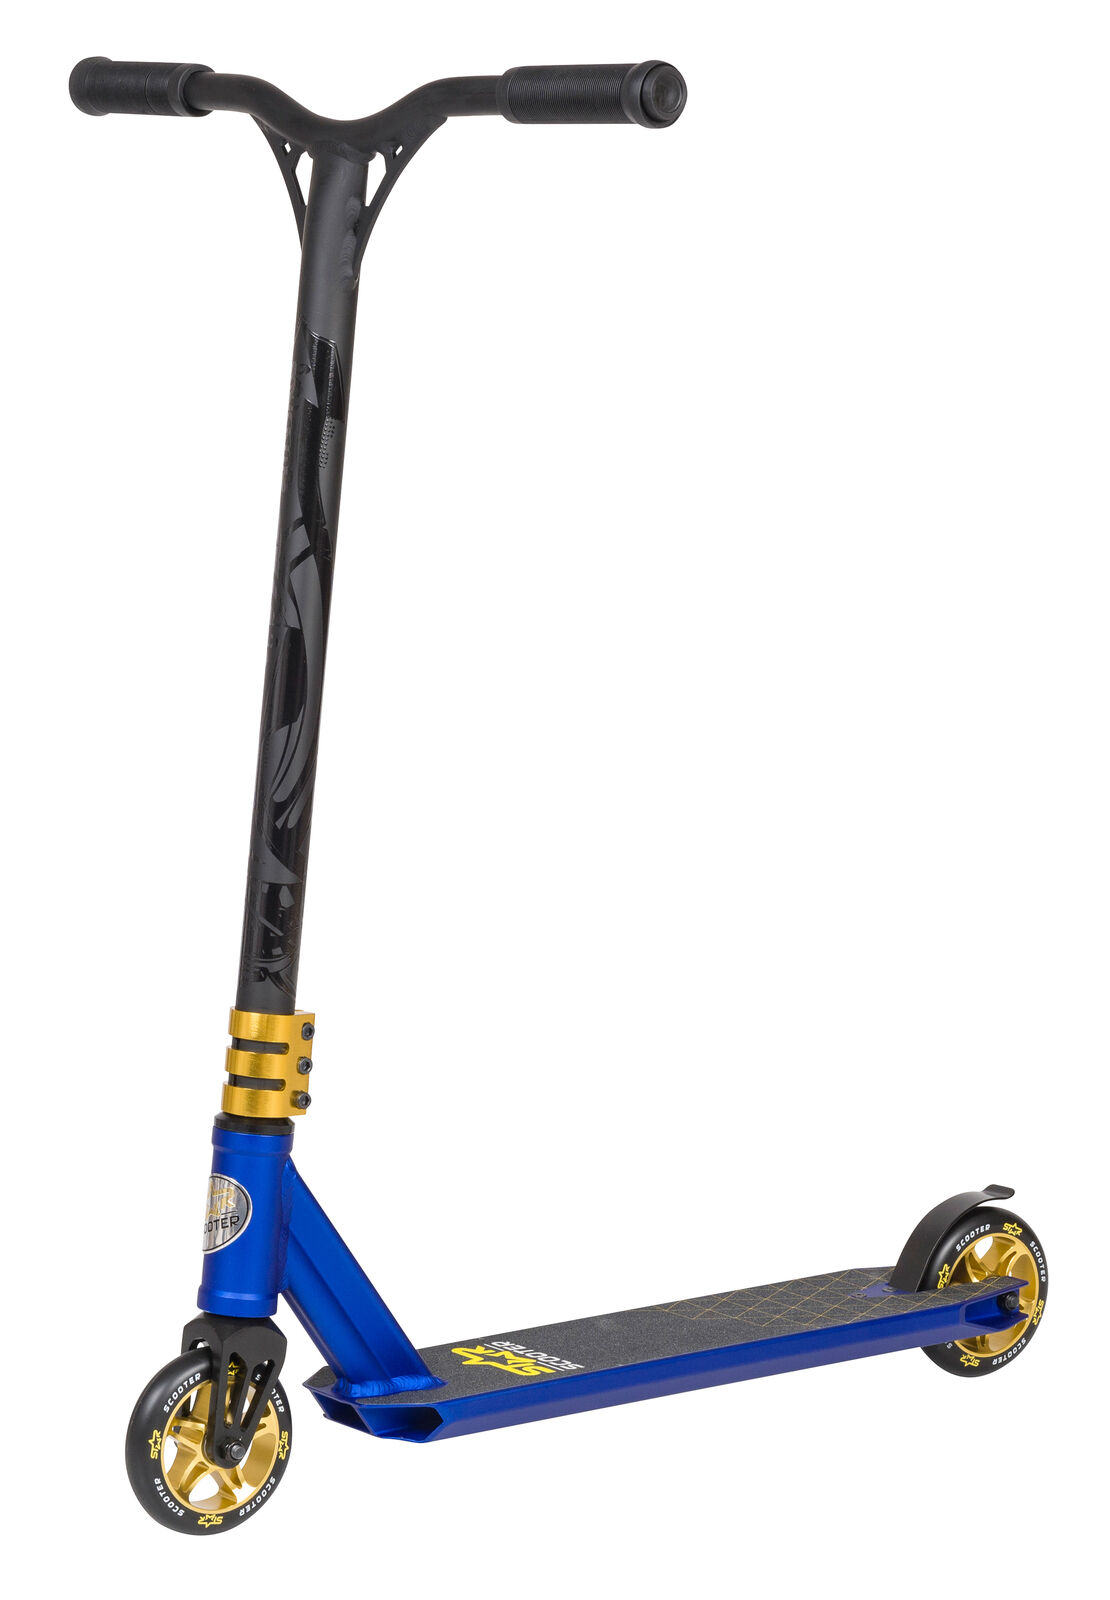 STAR-SCOOTER Freestyle Stunt Scooter Monopattino 2 | ruote semi prof. | 2 110mm fcb95d